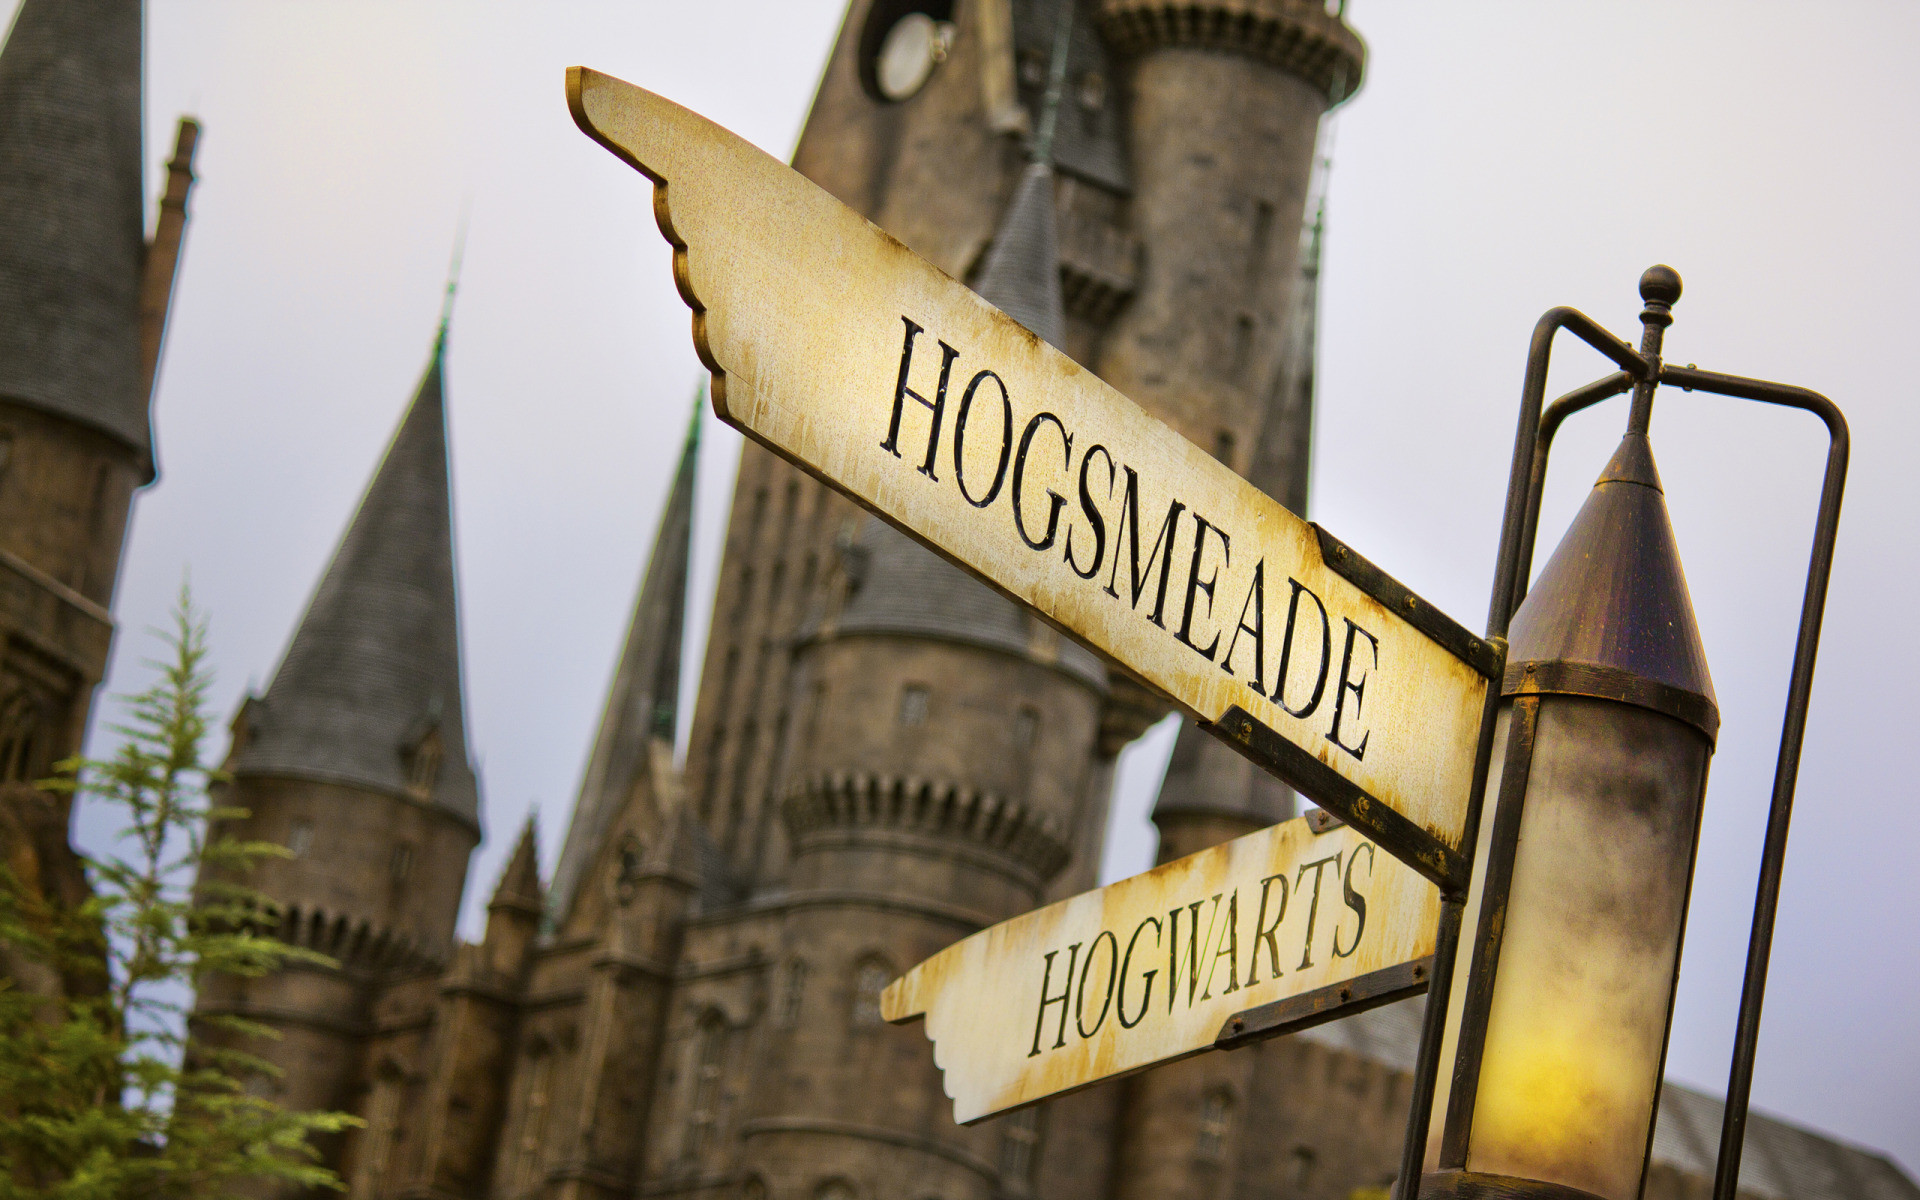 Res: 1920x1200, Wizarding world of harry potter backgrounds - Google Search ... src